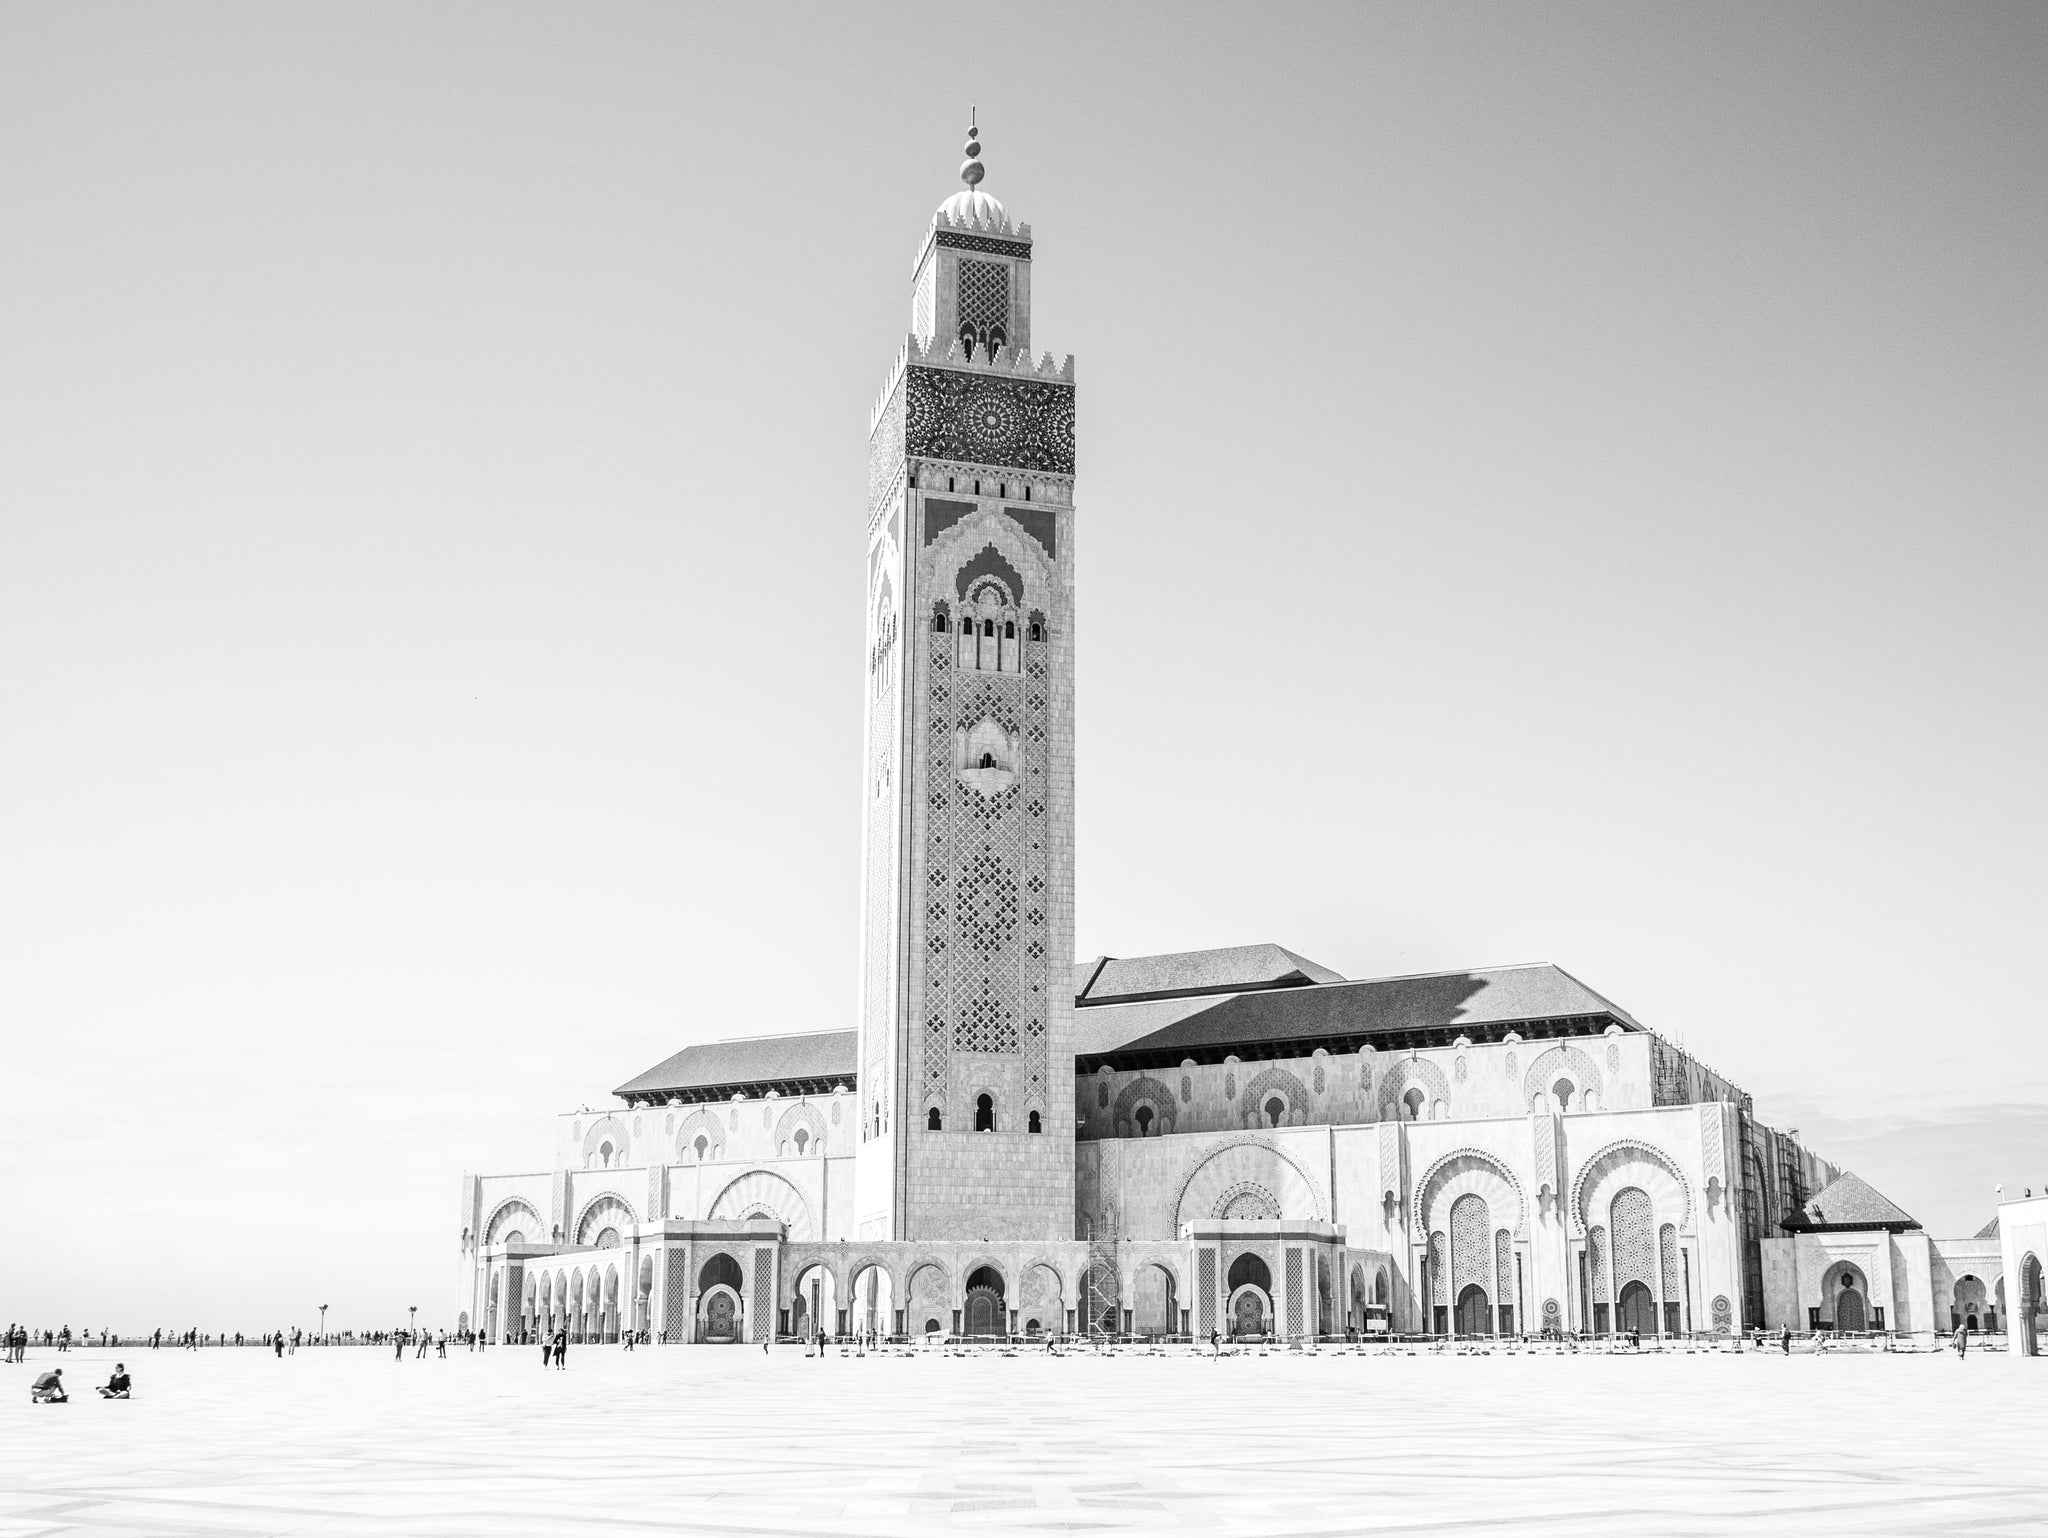 Using a Camera Strap While Visiting Casablanca